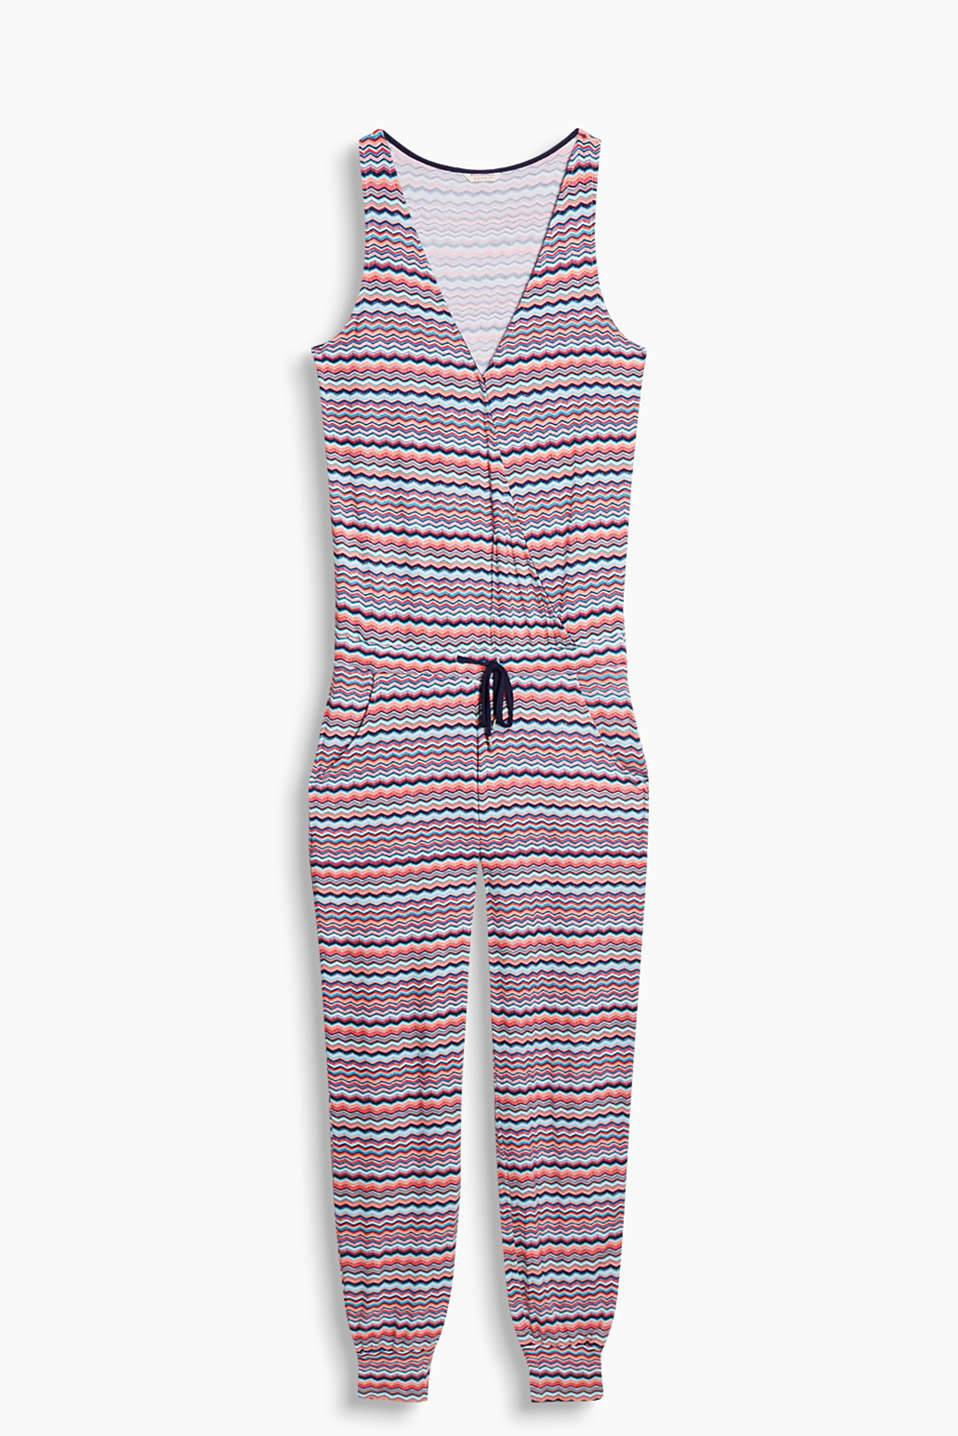 Jumpsuit with a colourful zigzag print, fixed wrap-over effect, drawstring waist and hem cuffs, stretch jersey